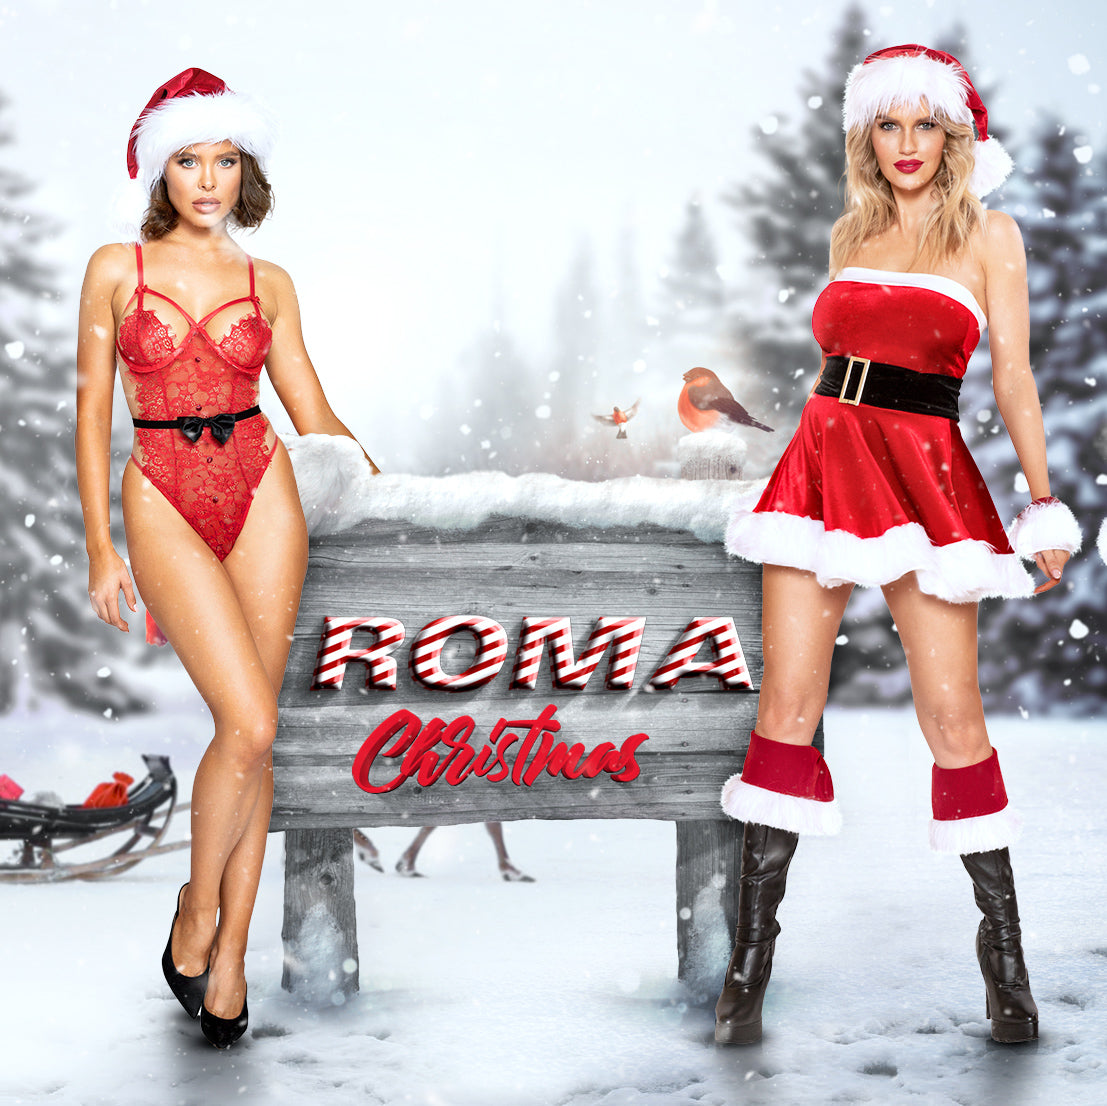 Roma Costume and Roma Confidential 2019 Christmas collection for bulk wholesale and world wide drop shipping!